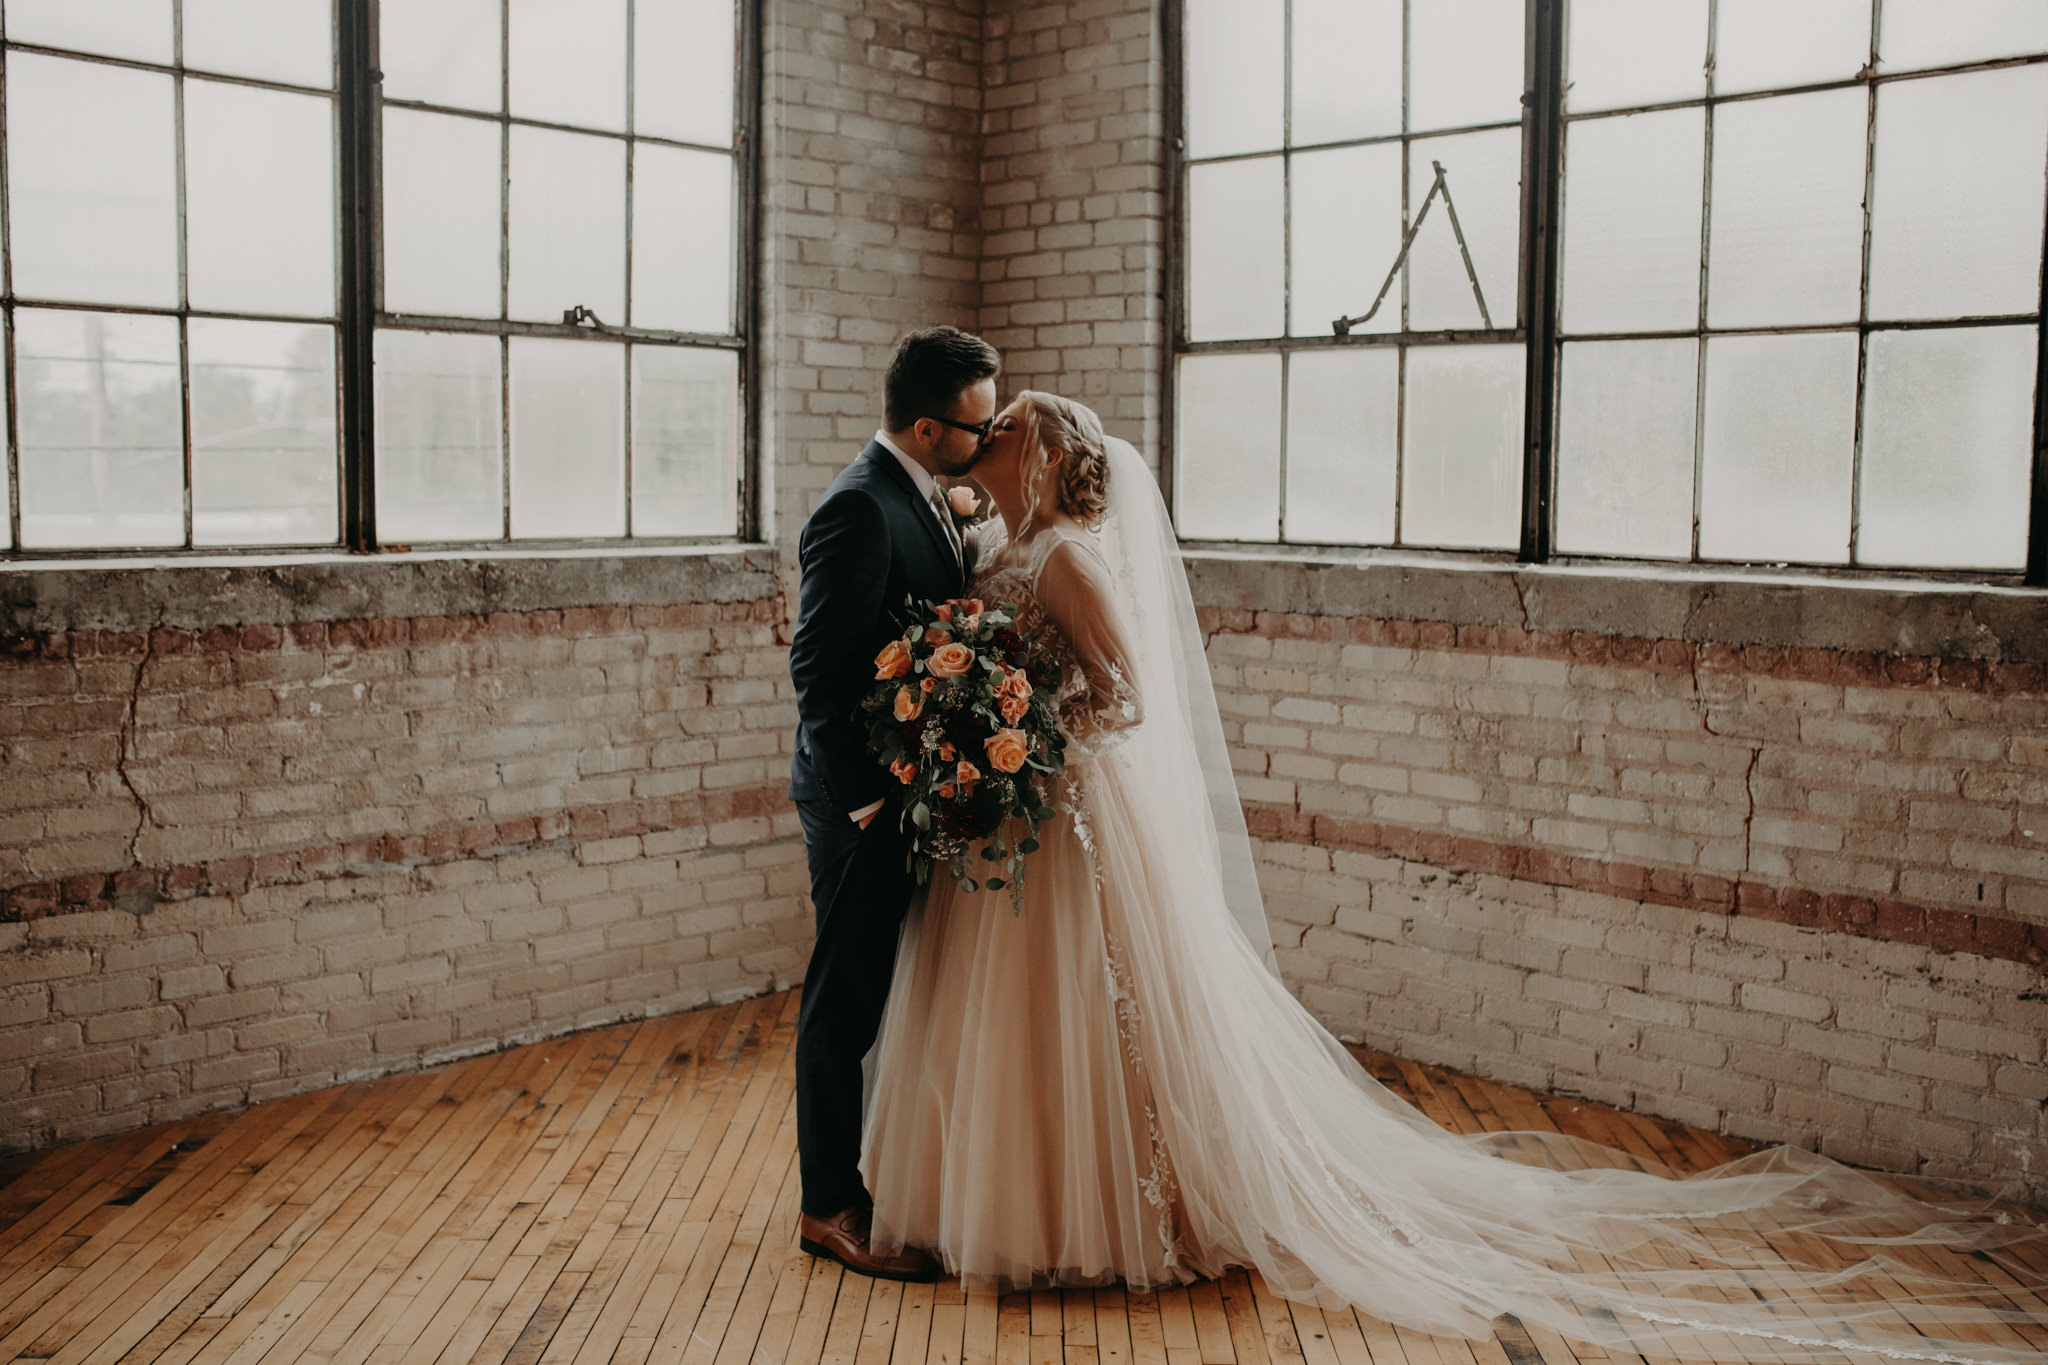 Bride and groom kissing in front of square windows and brick